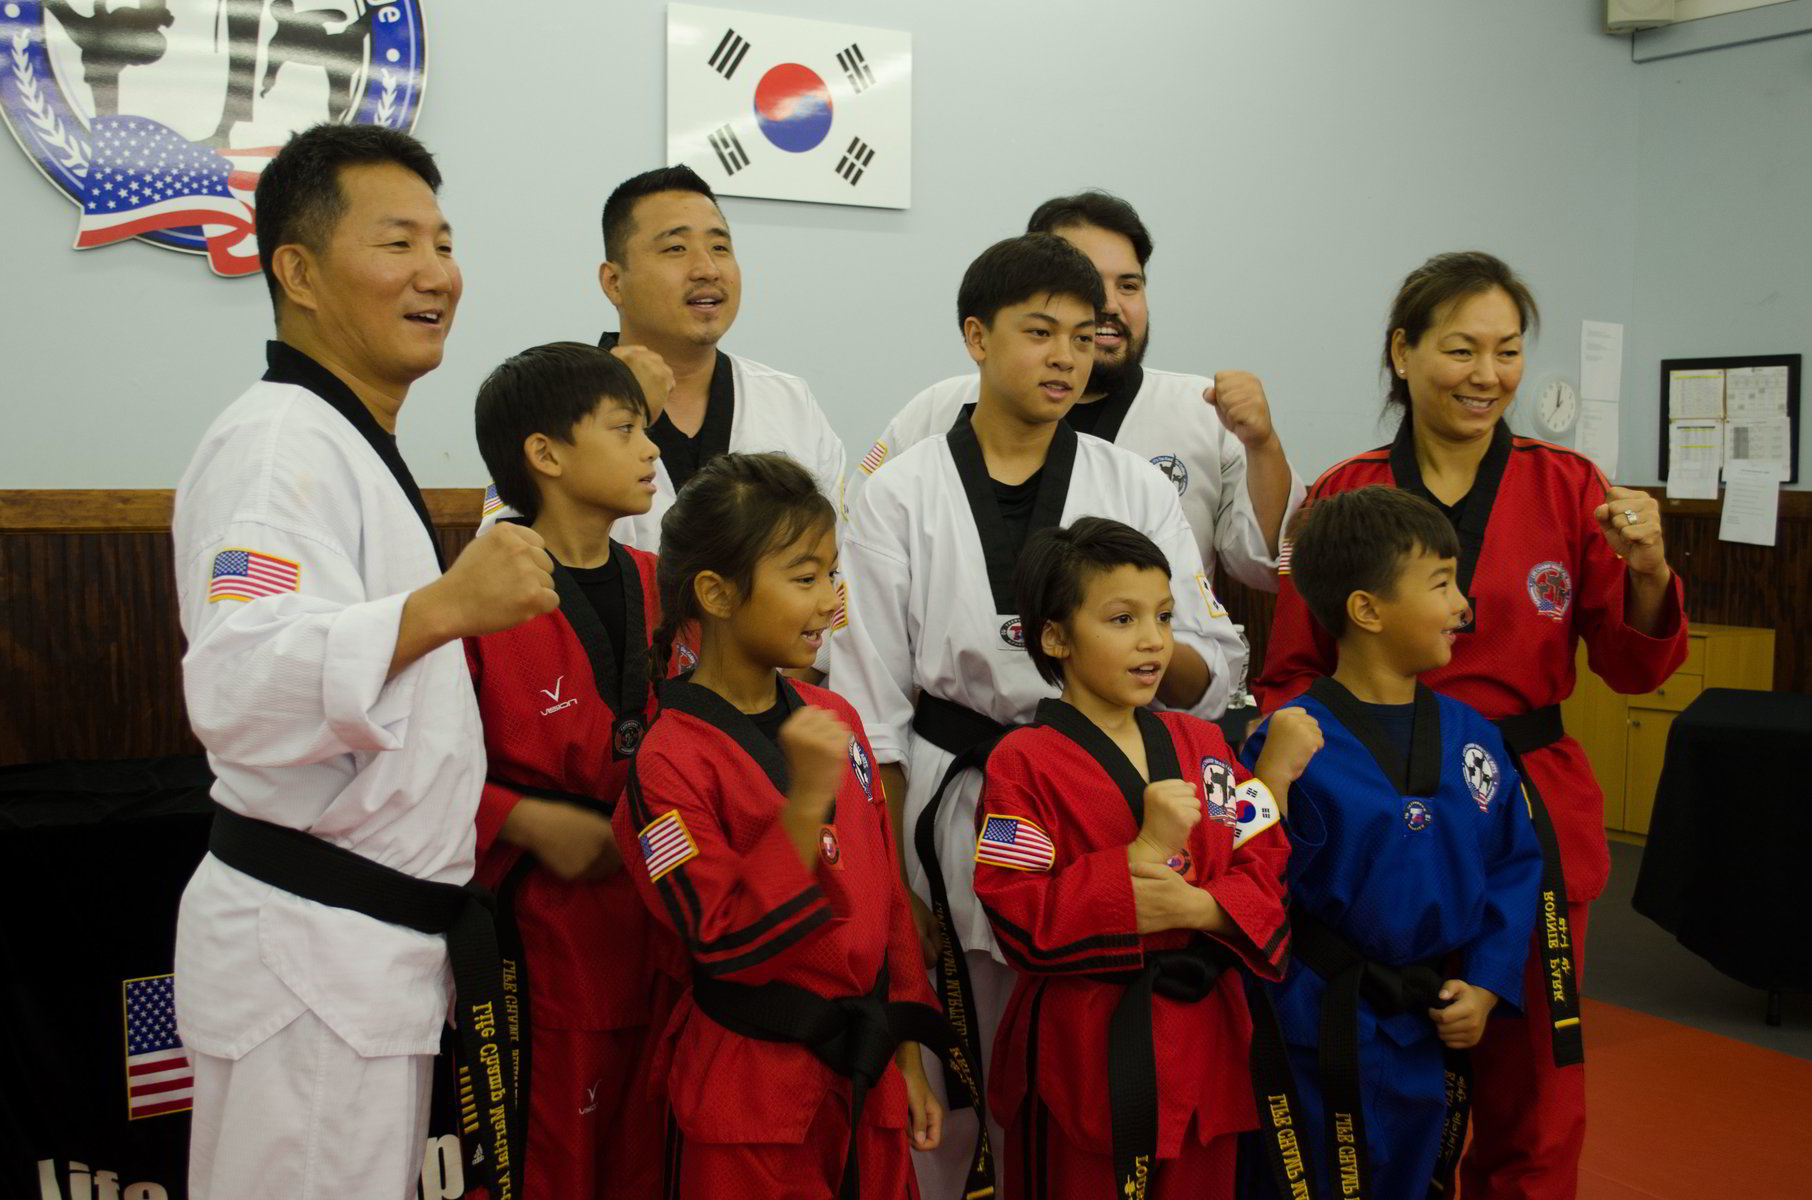 Teens and adults martial arts